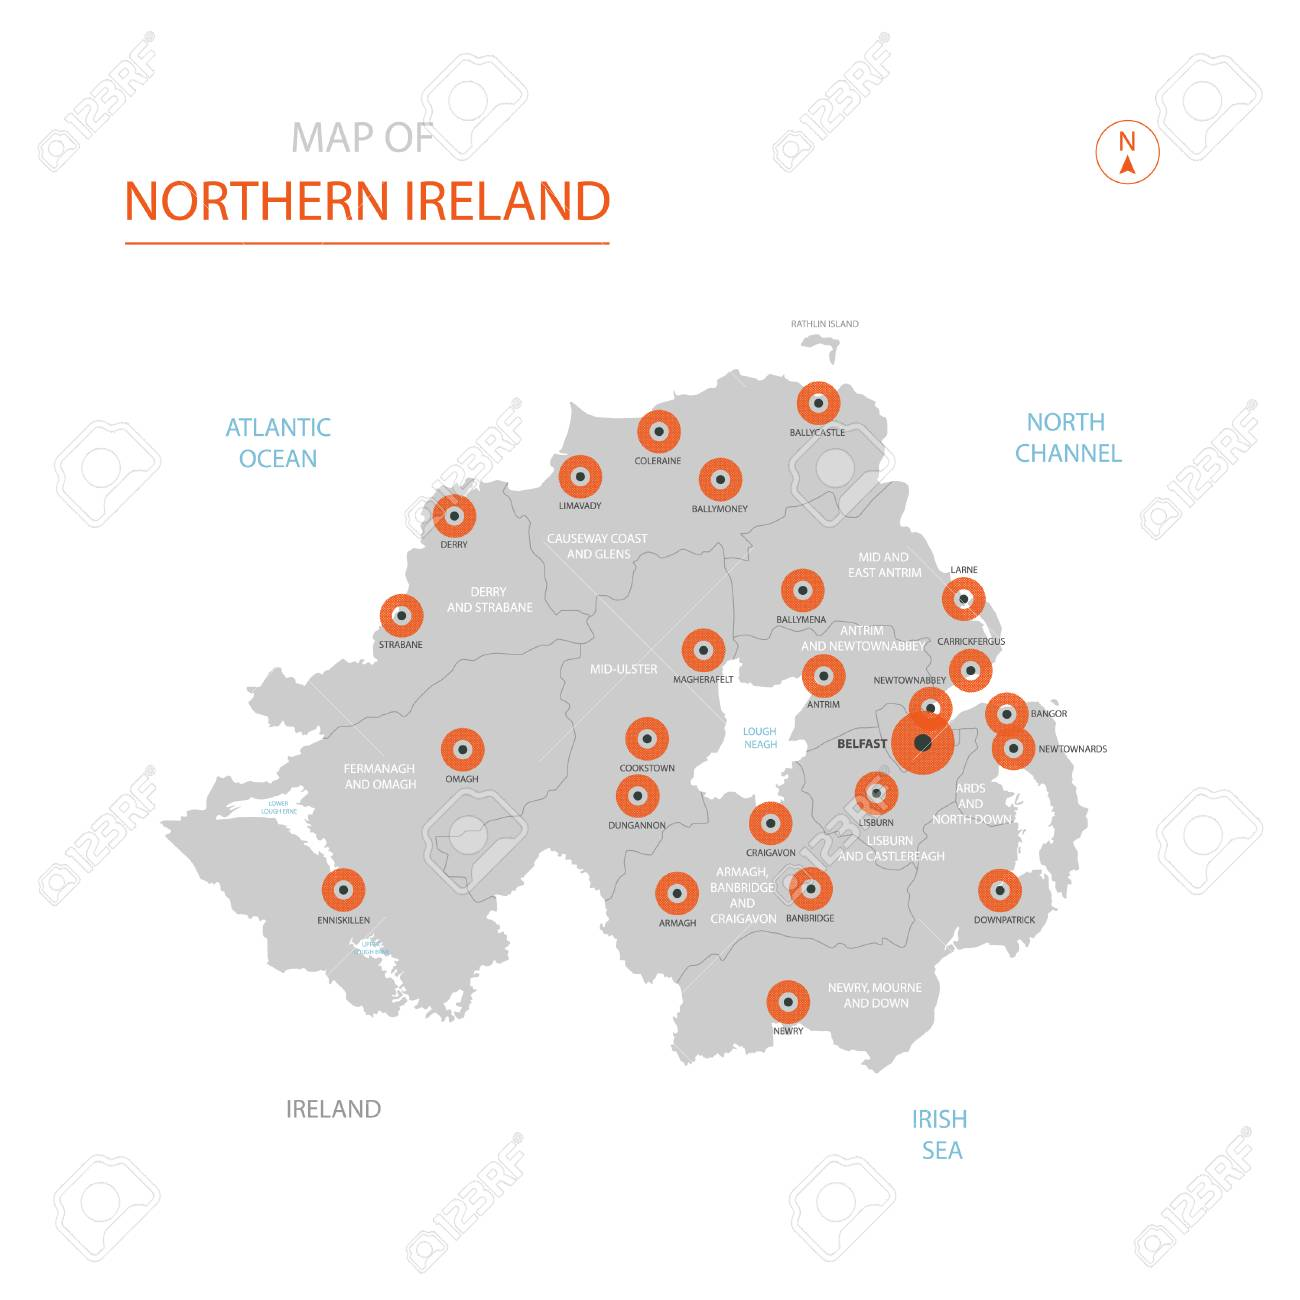 Map Of Northern Ireland Cities.Stylized Vector Northern Ireland Map Showing Big Cities Capital